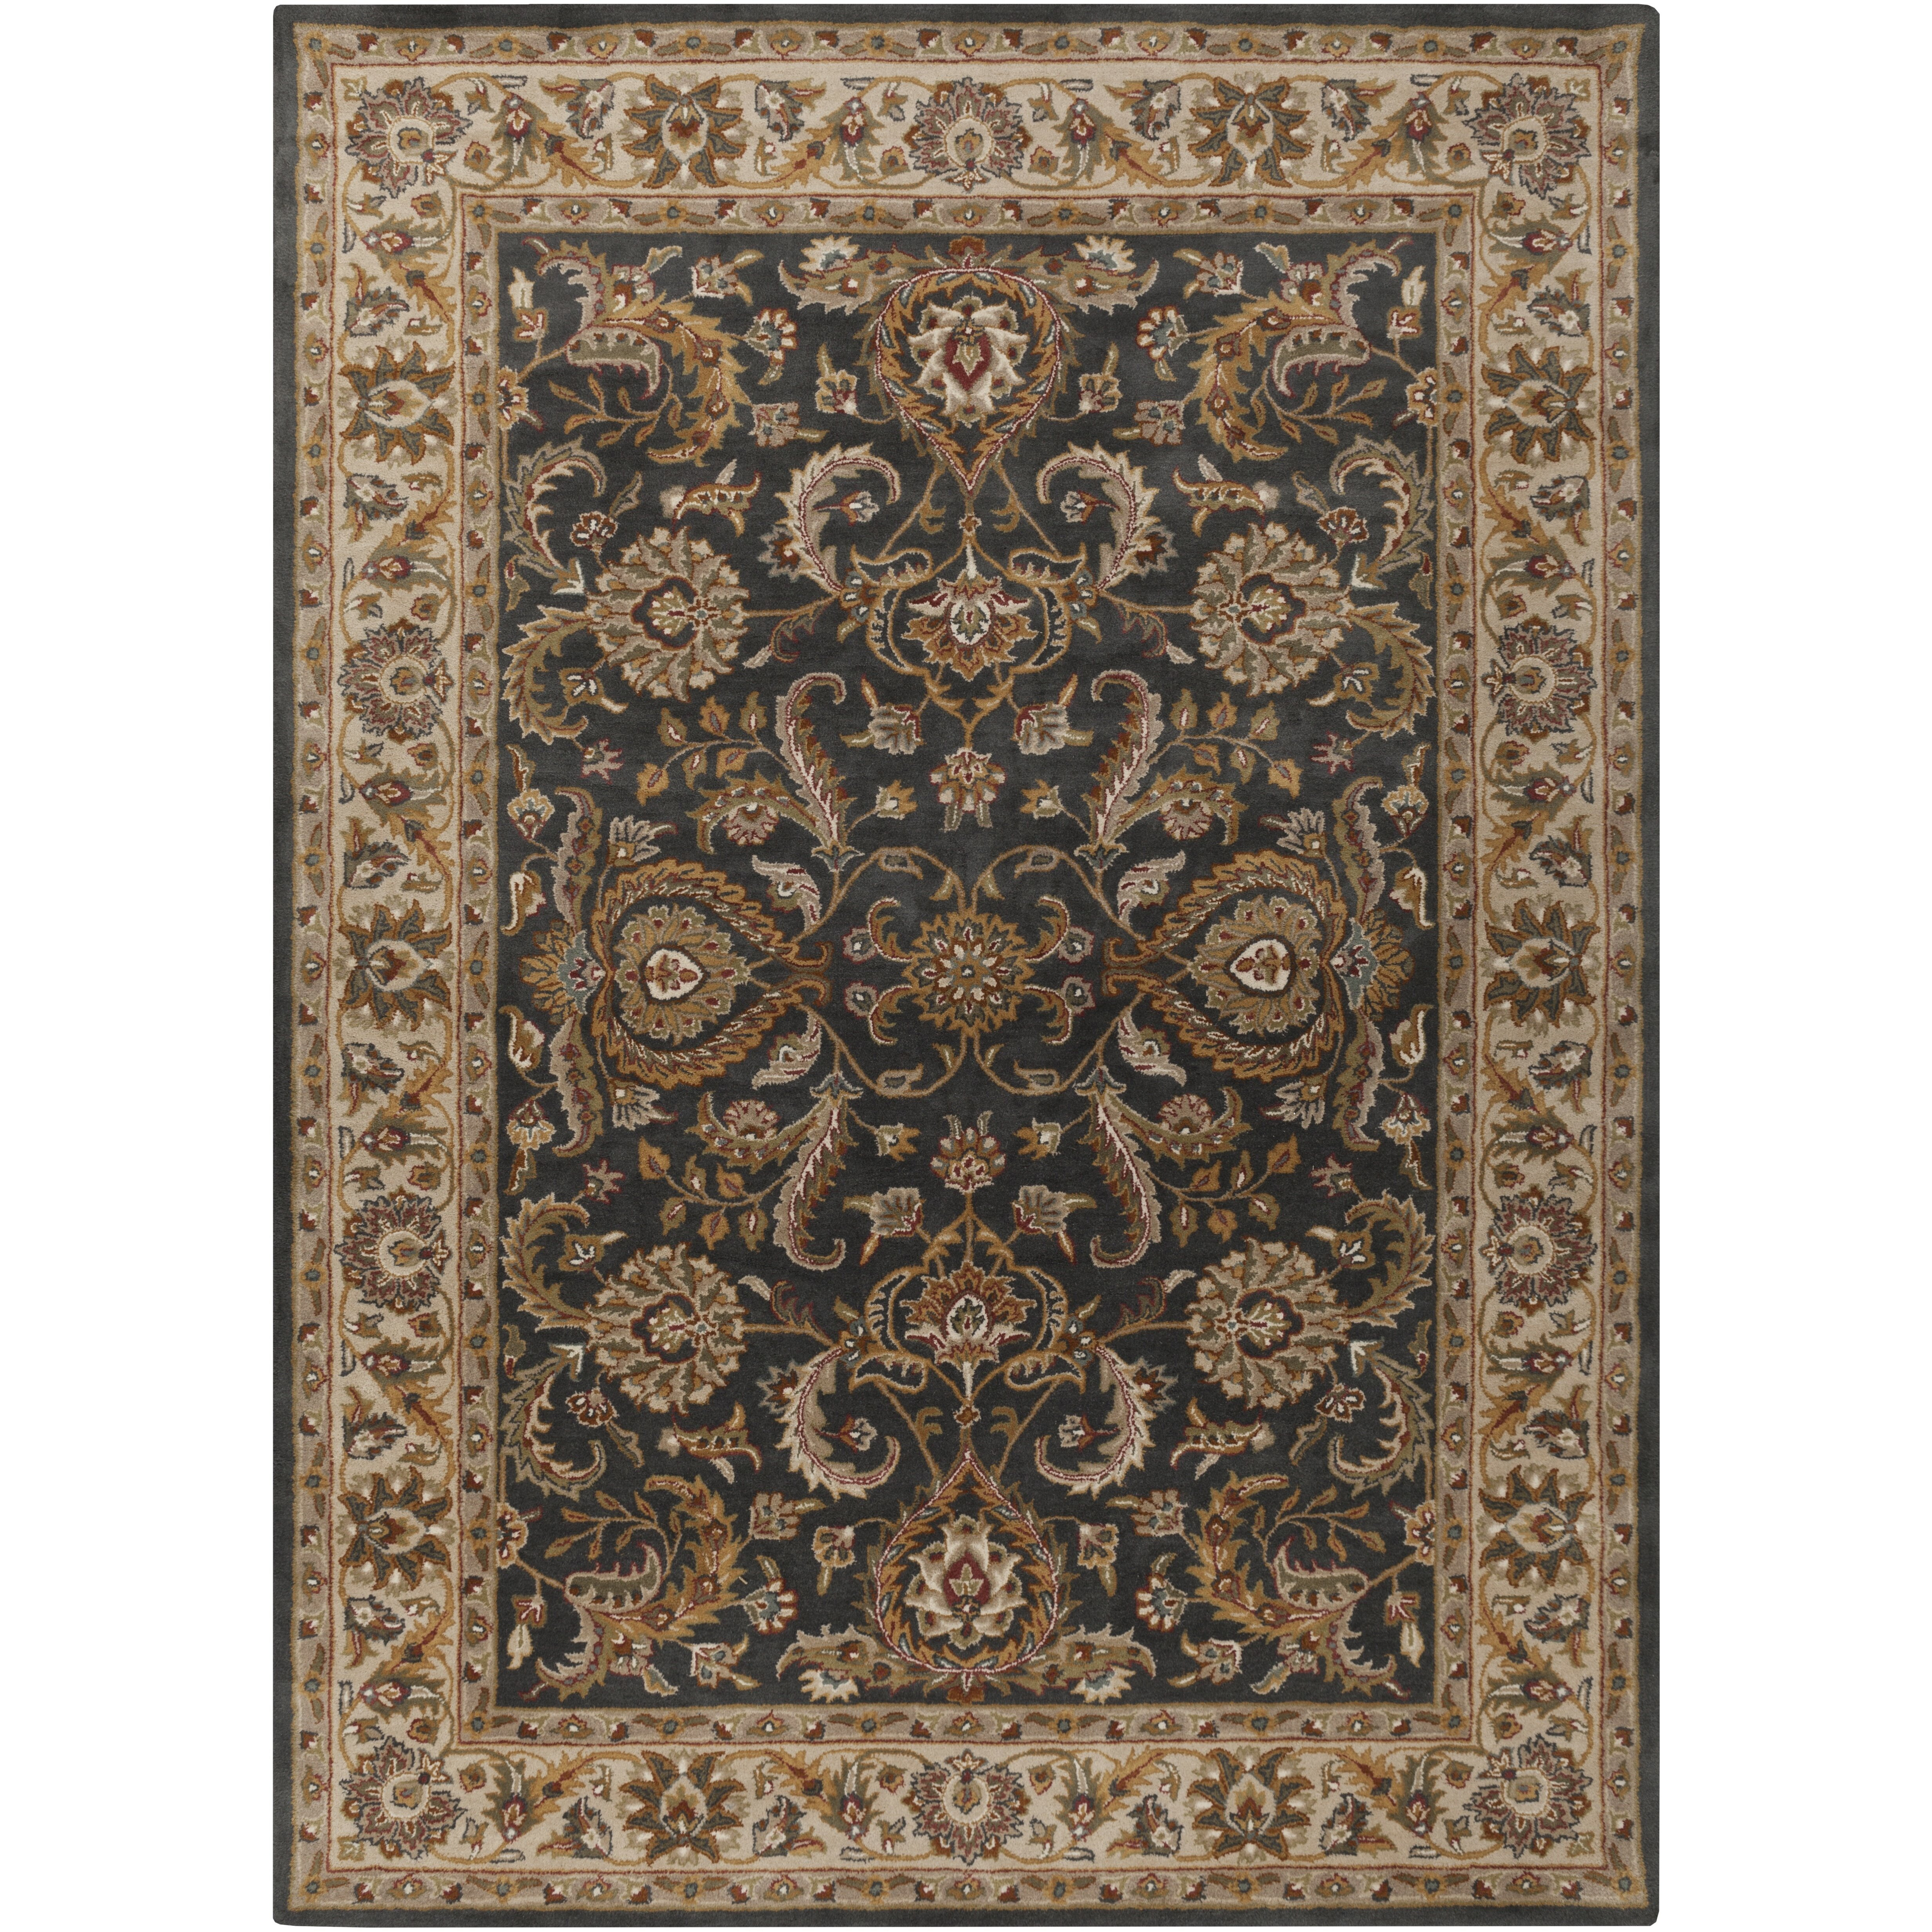 Artistic Weavers Middleton Georgia Charcoal Ivory Area Rug